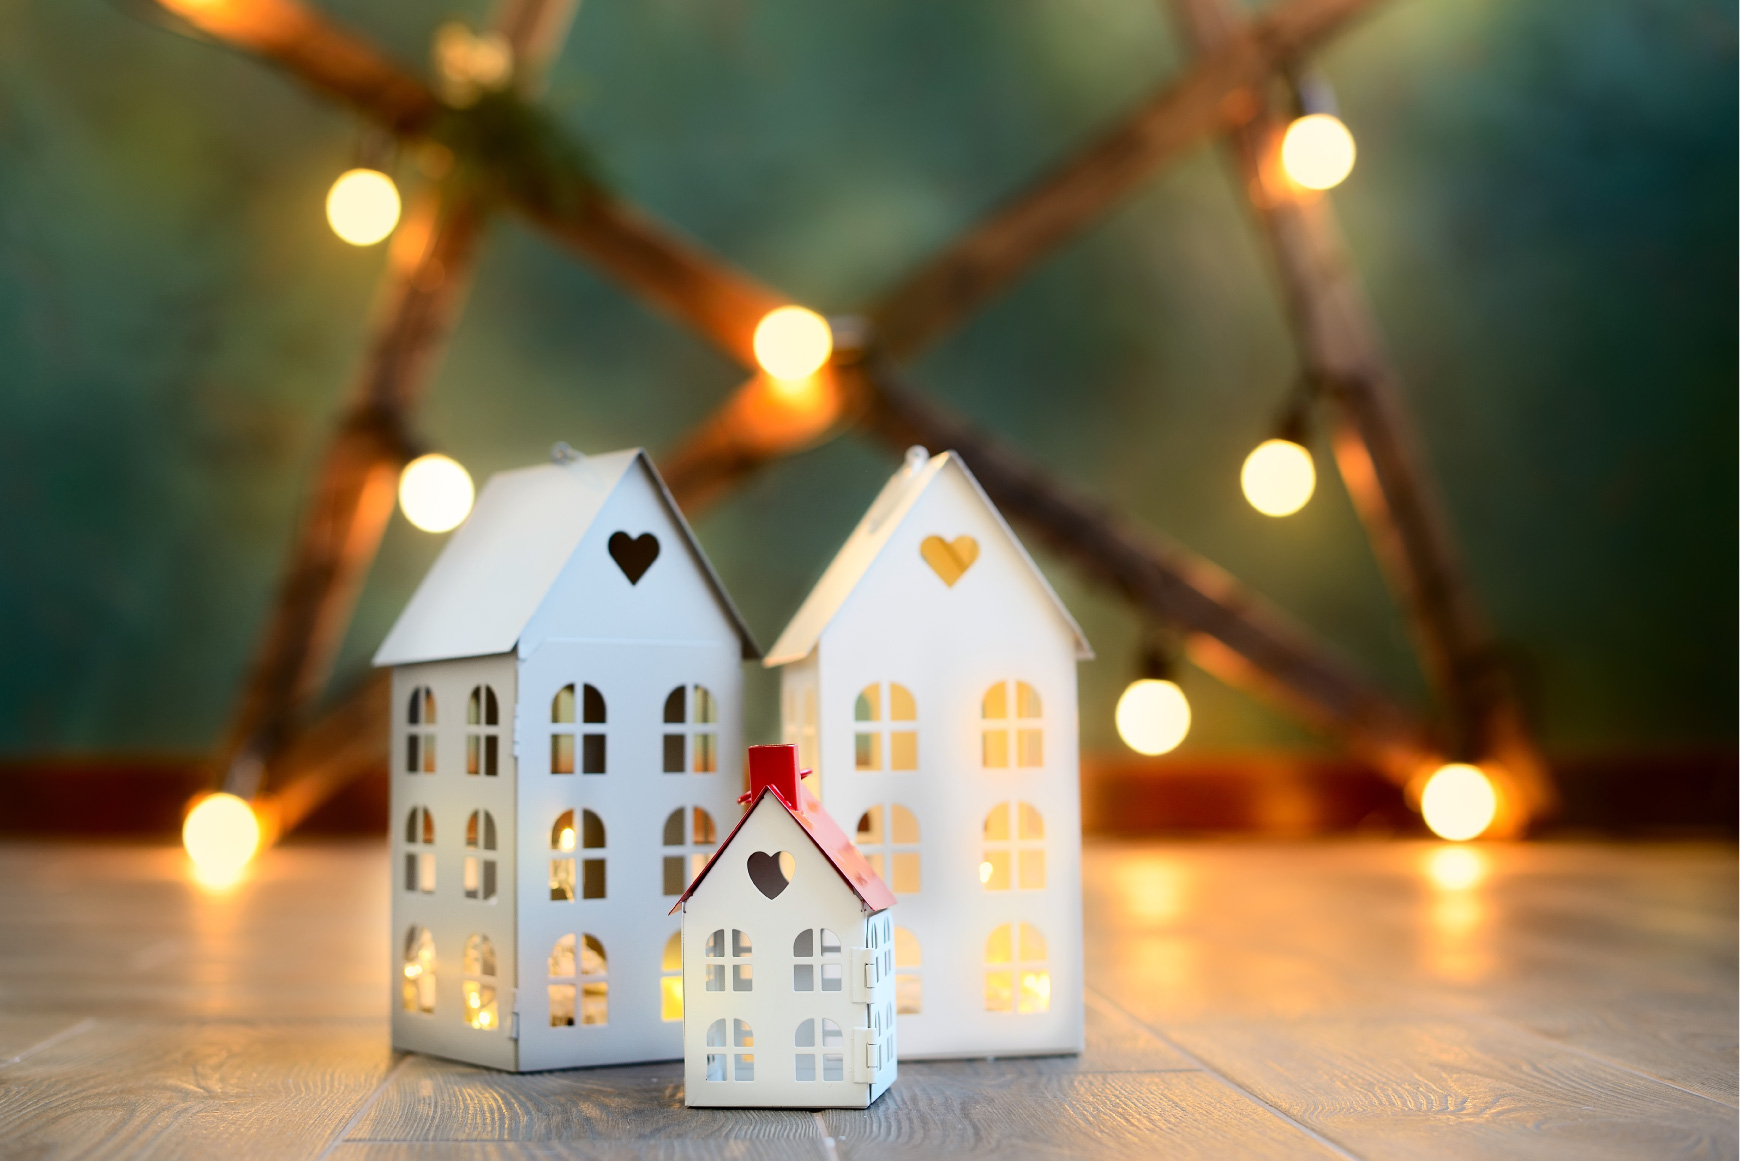 3 small white model houses with lighted star in background